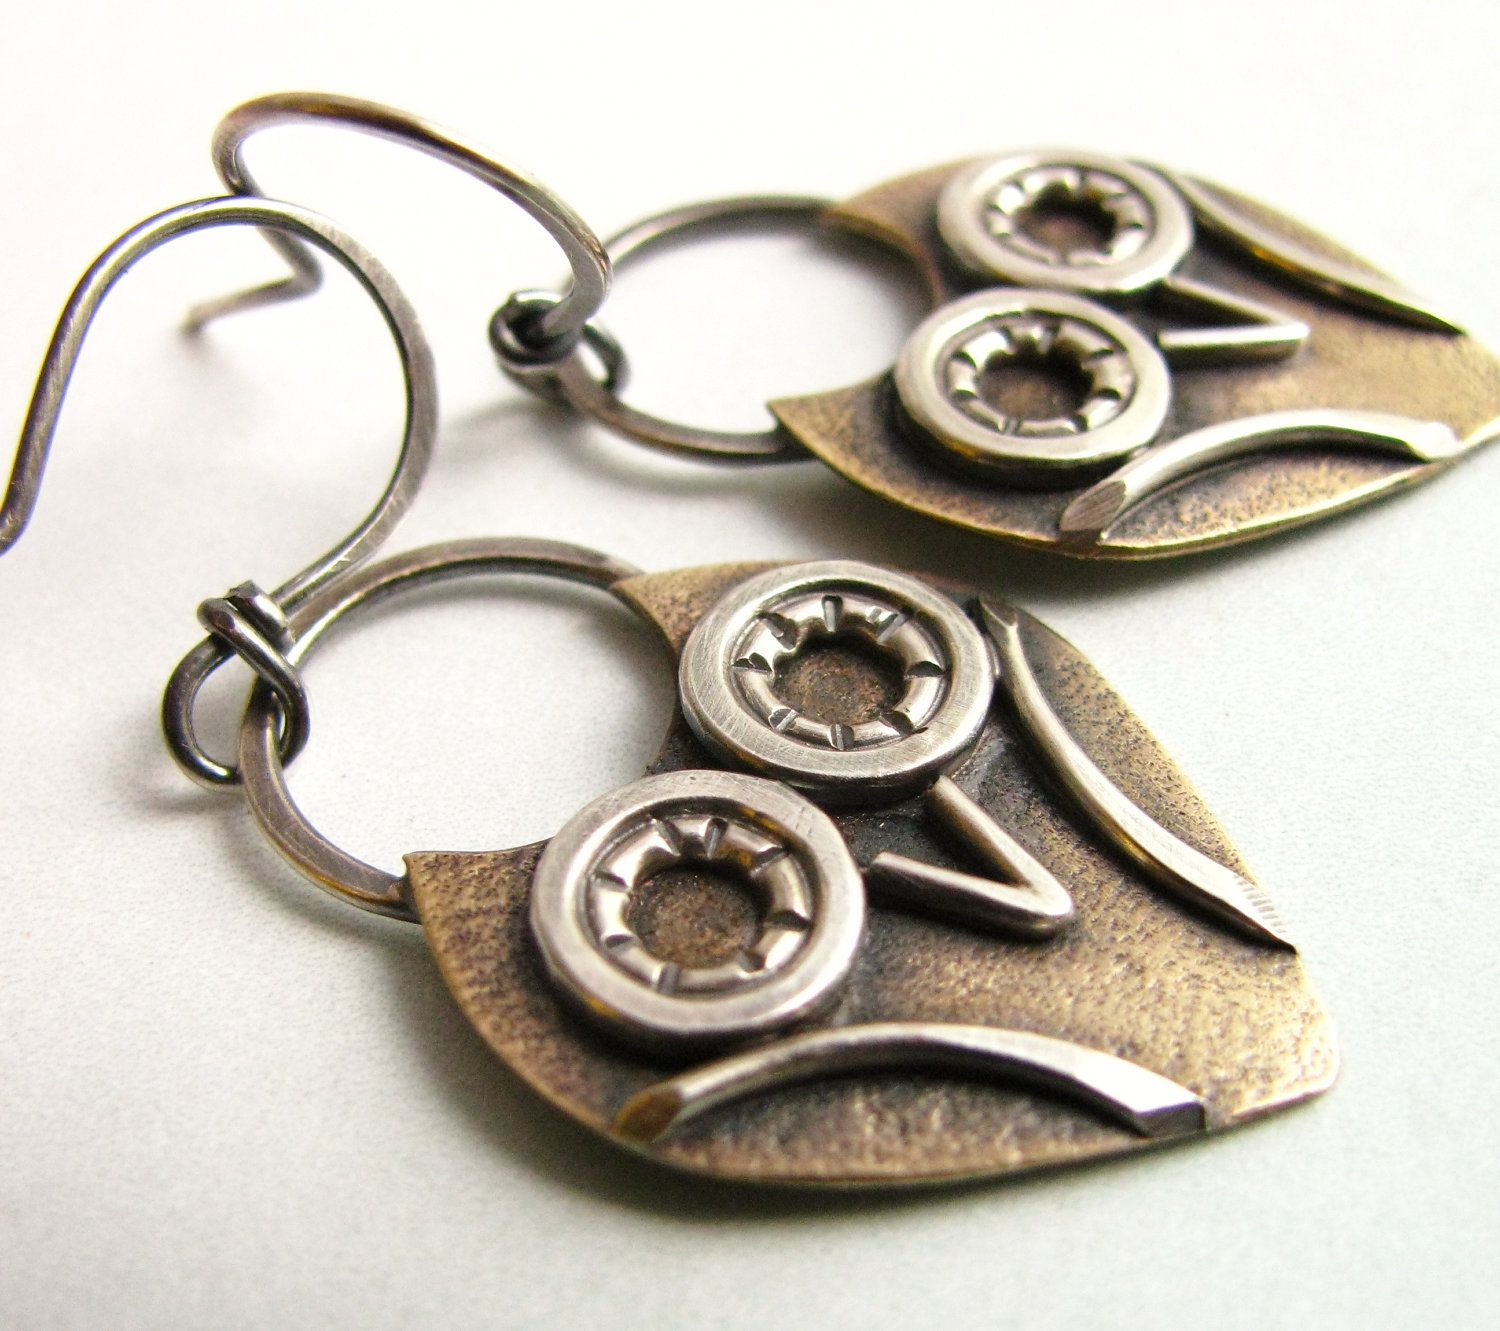 Little Owl Earrings - Bronze And Sterling Silver Artisan Metalsmith Jewelry -  Mixed Metal Owl Jewelry. $58.00, via Etsy.